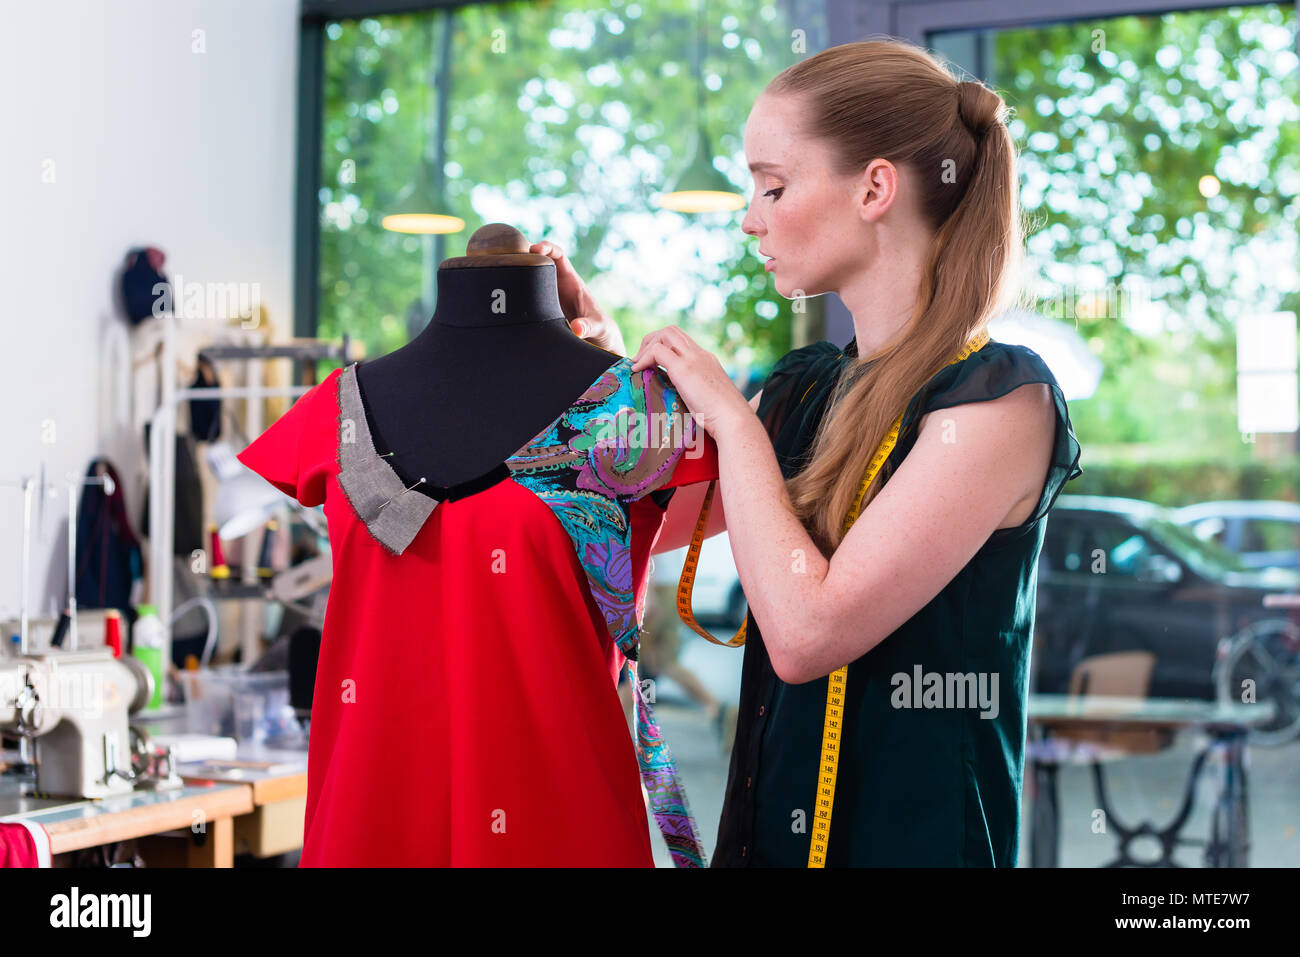 Fashion designer draping dress on mannequin - Stock Image